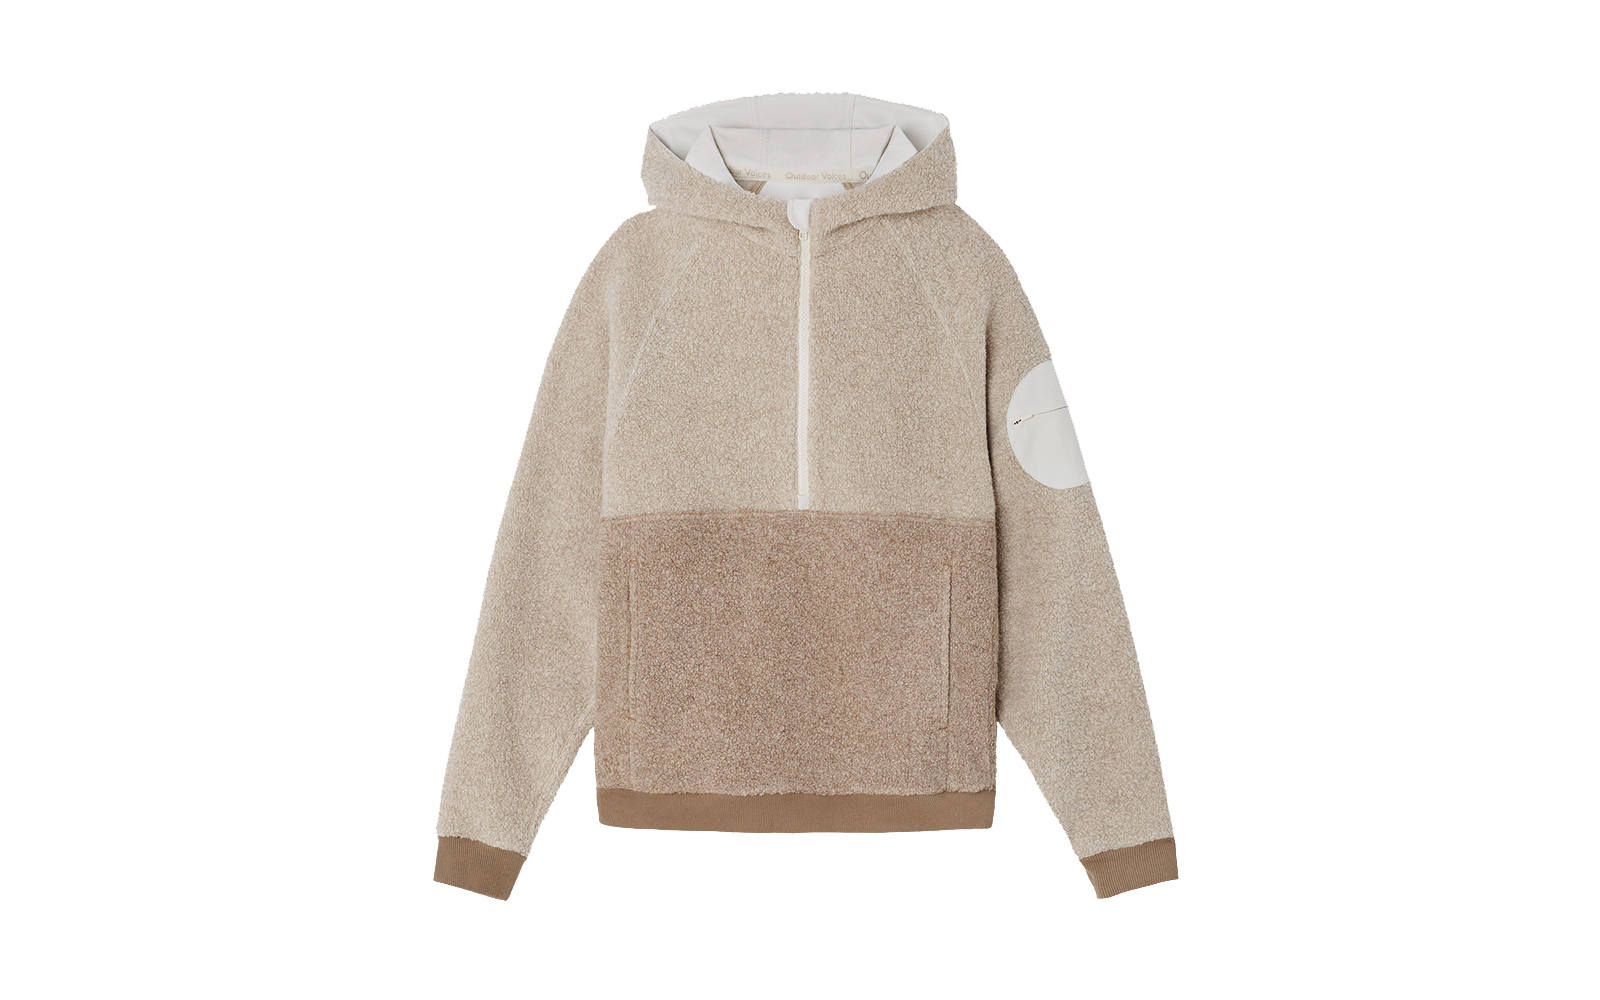 The fleece hoodie that garnered a 20,000-person waitlist is finally back in stock